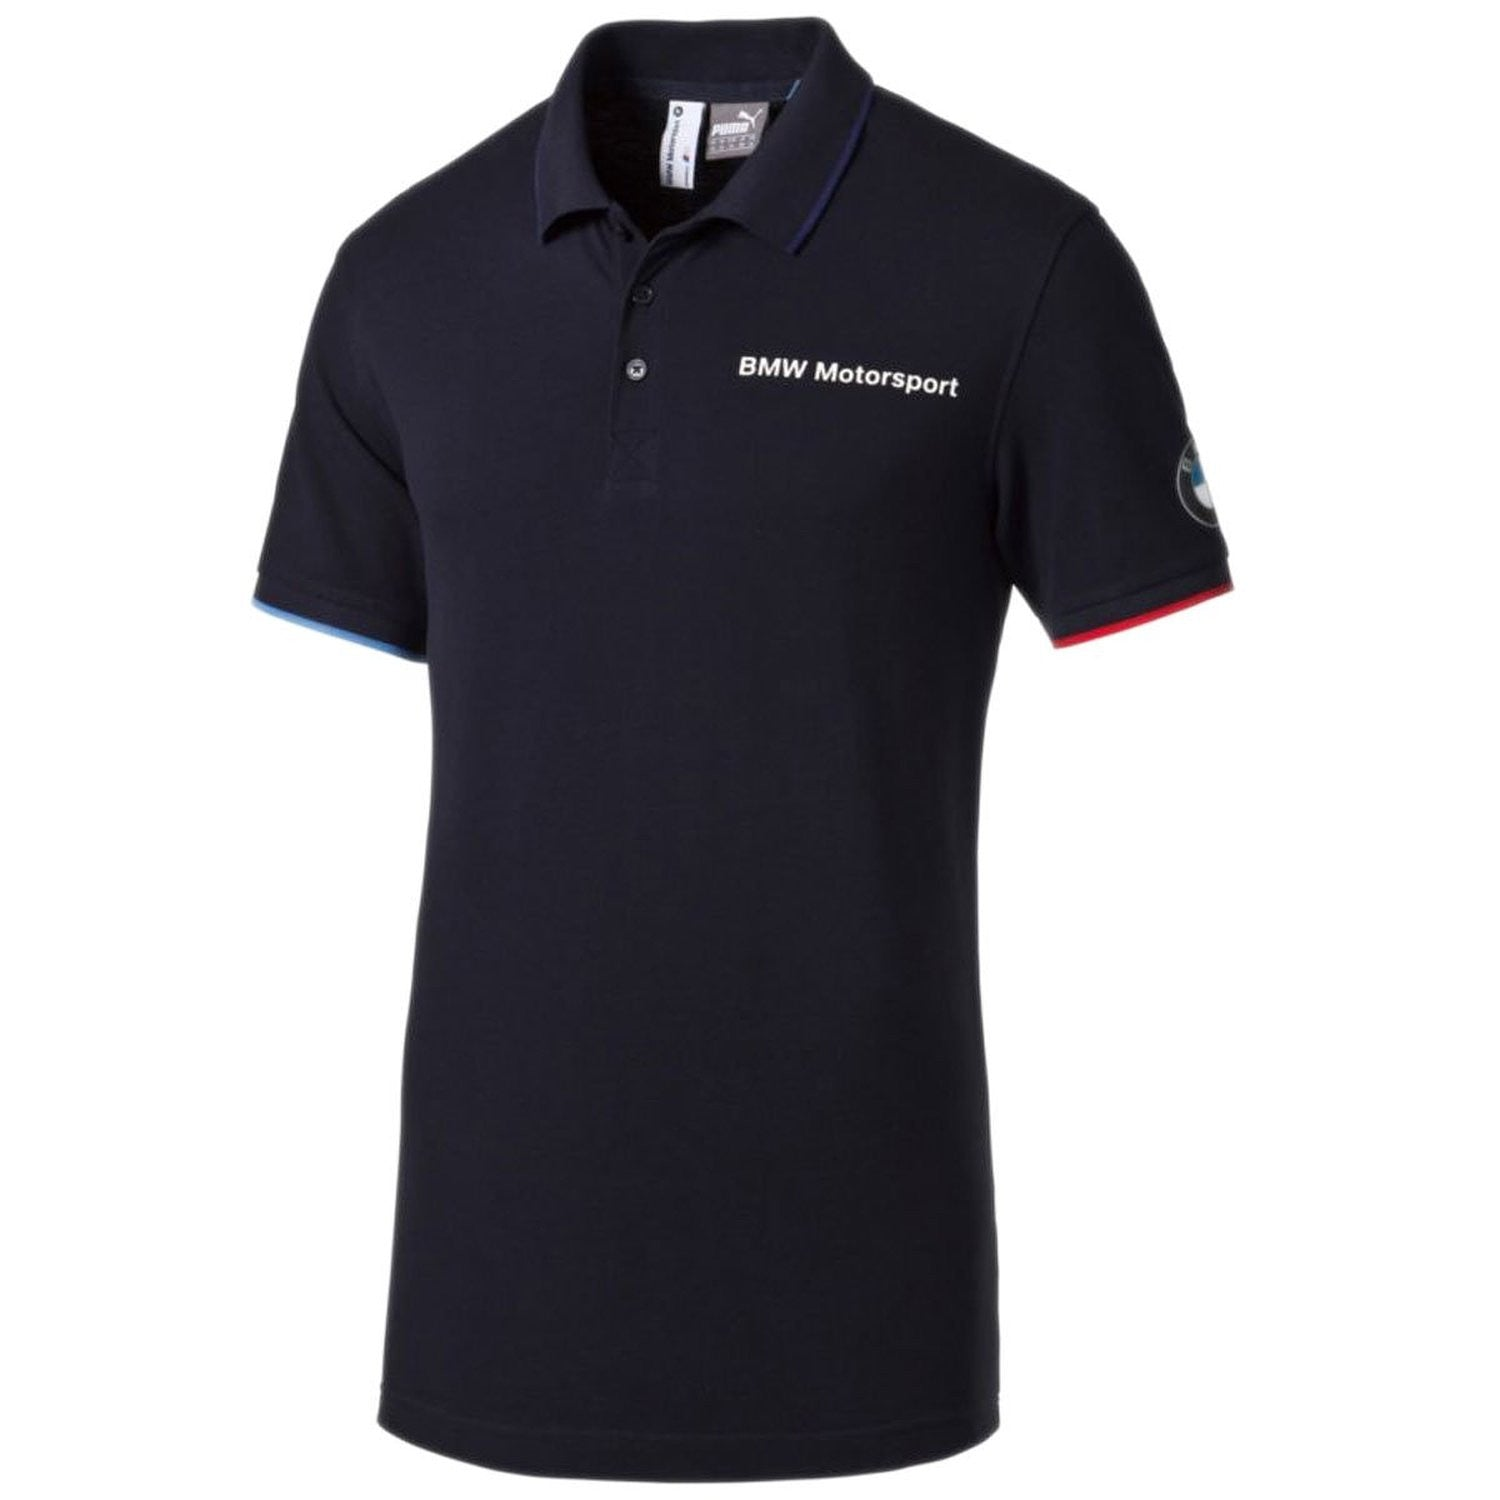 560608e8c6 Puma BMW Motorsport Polo Shirt - BMW Team Blue - Mens - Shoplifestyle